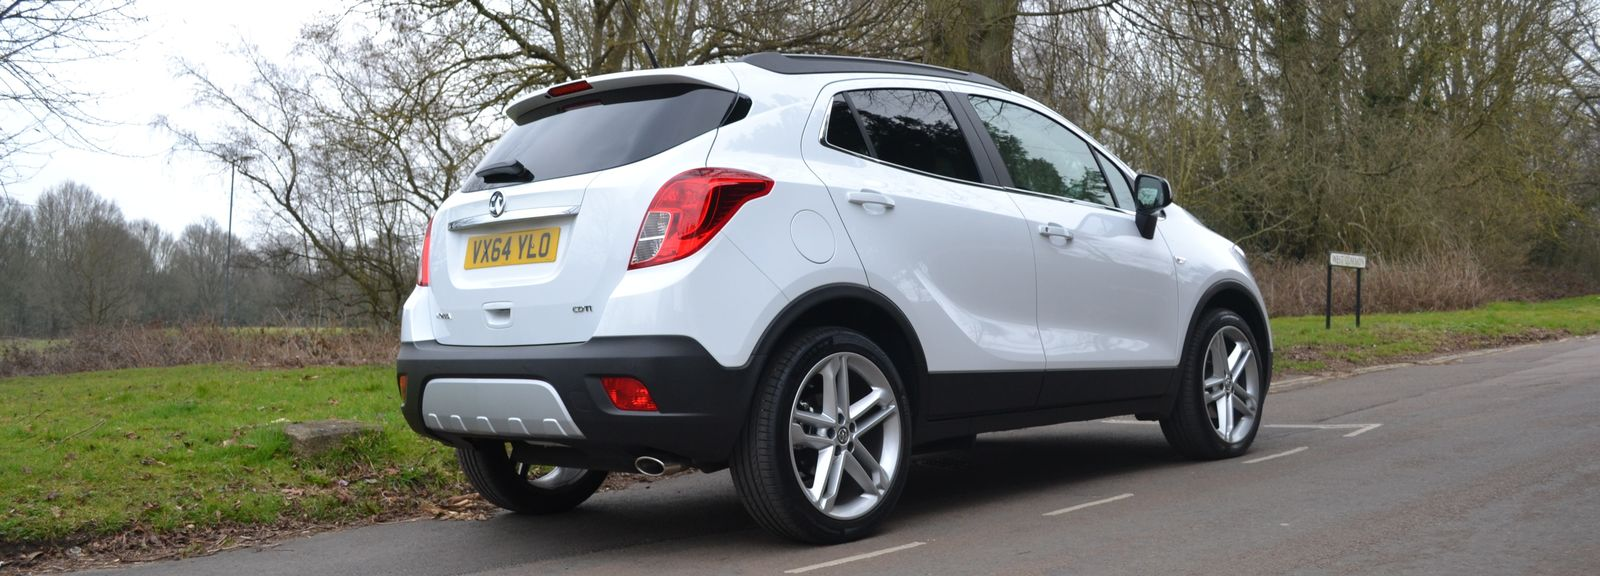 Vauxhall Mokka 1.6 diesel: the good and the bad  carwow